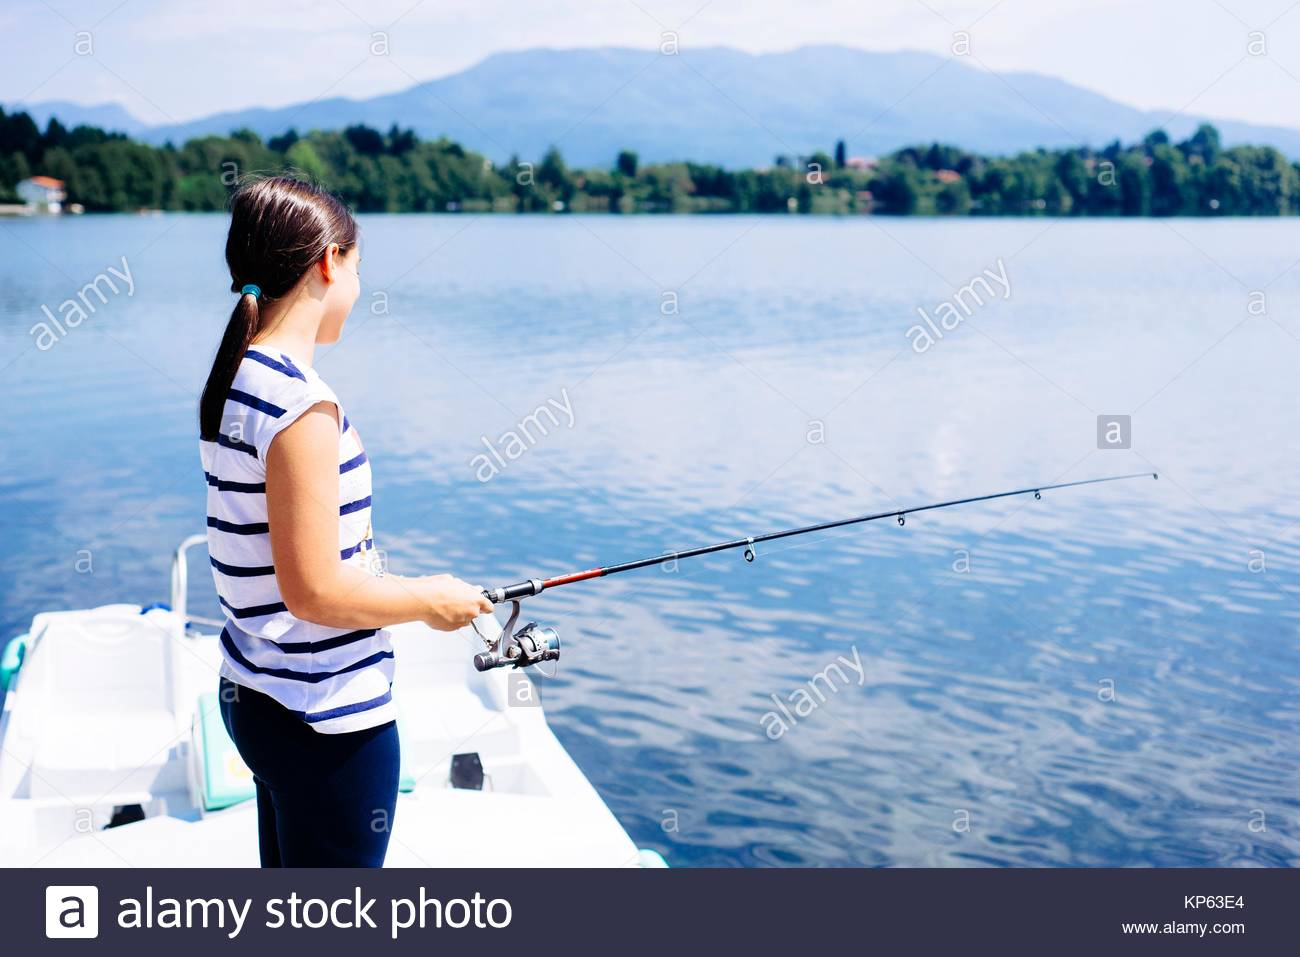 girl fishing in the lake of Monate., Italy - Stock Image